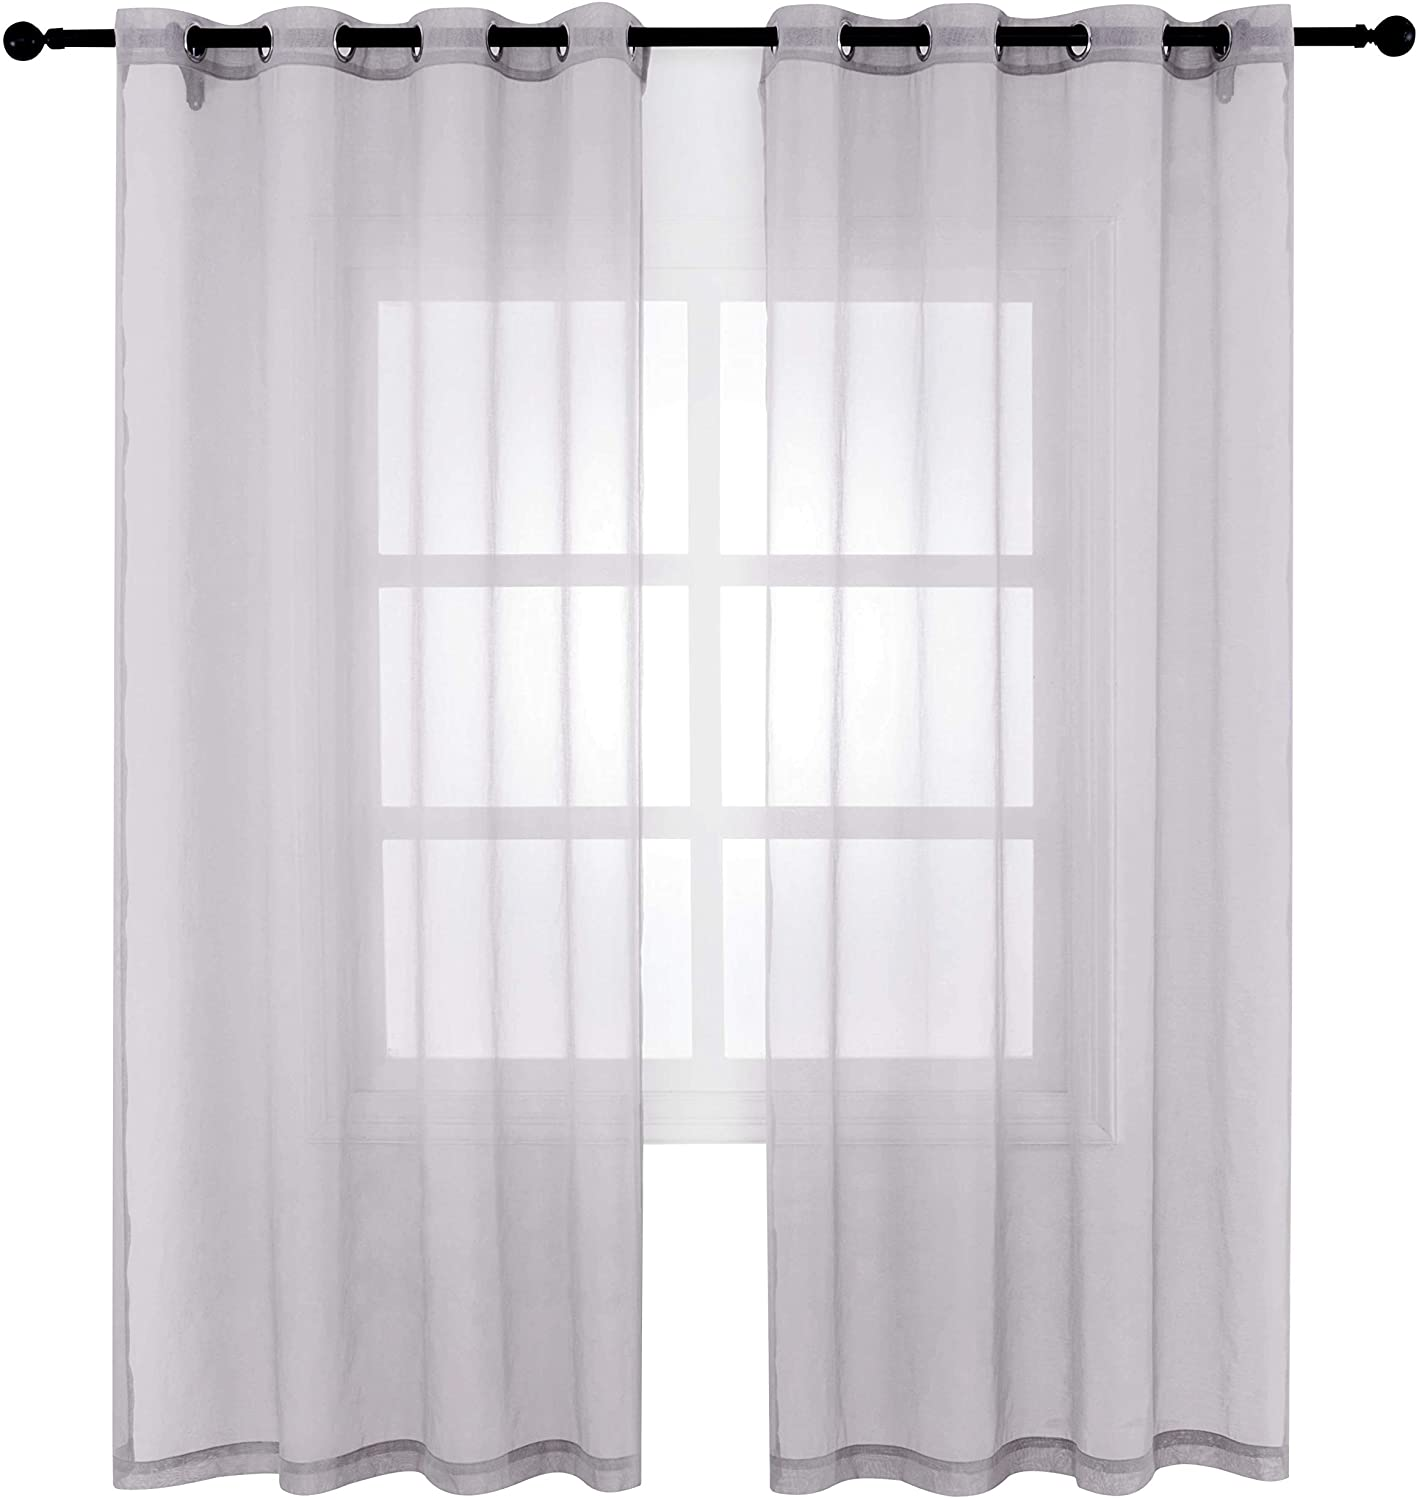 Bermino Faux Linen Sheer Curtains Voile Grommet Semi Sheer Curtains for Bedroom Living Room Set of 2 Curtain Panels 54 x 72 inch Grey